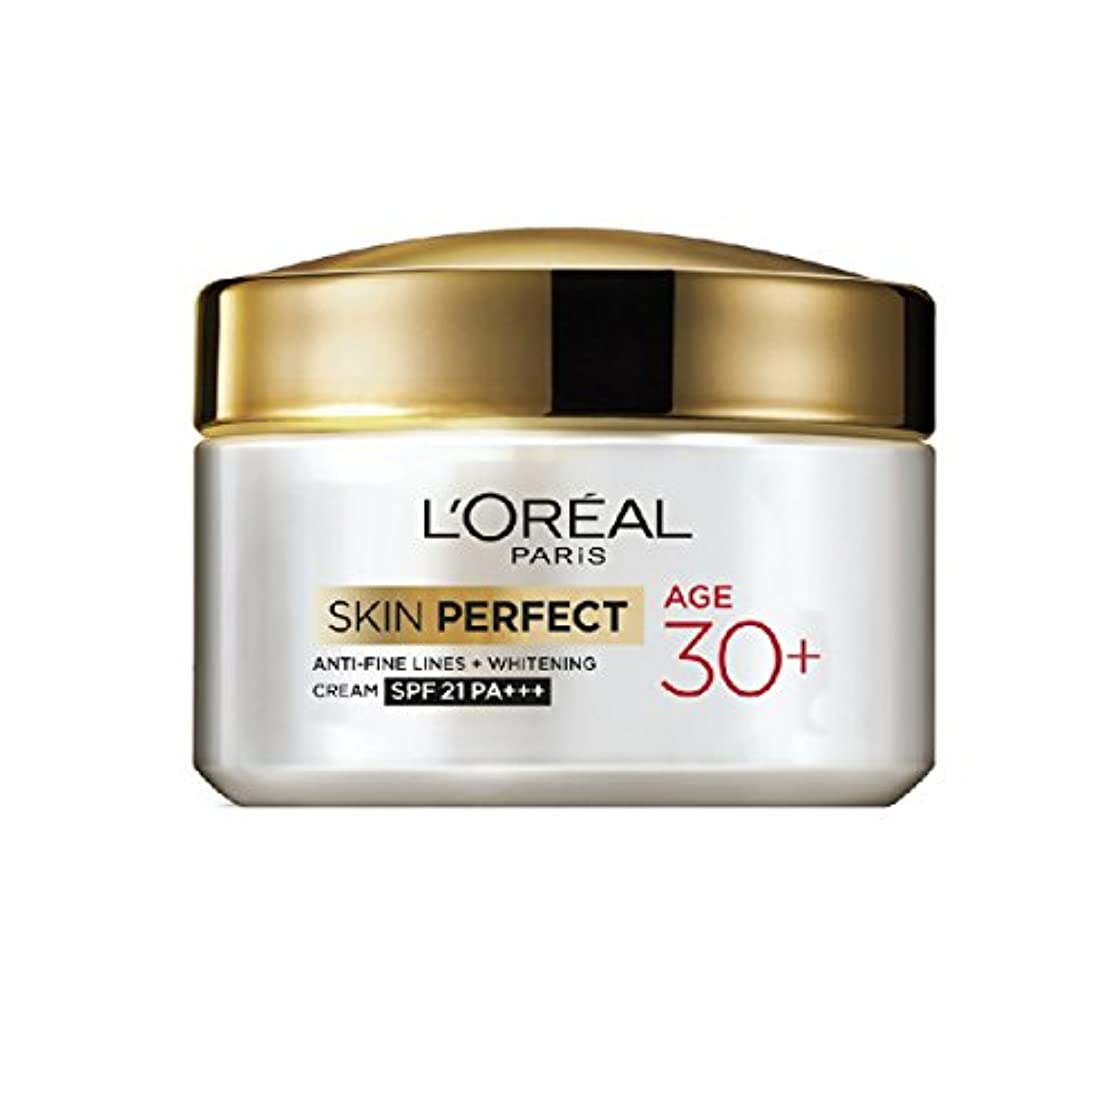 ボウリングモードインフラL'Oreal Paris Perfect Skin 30+ Day Cream, 50g